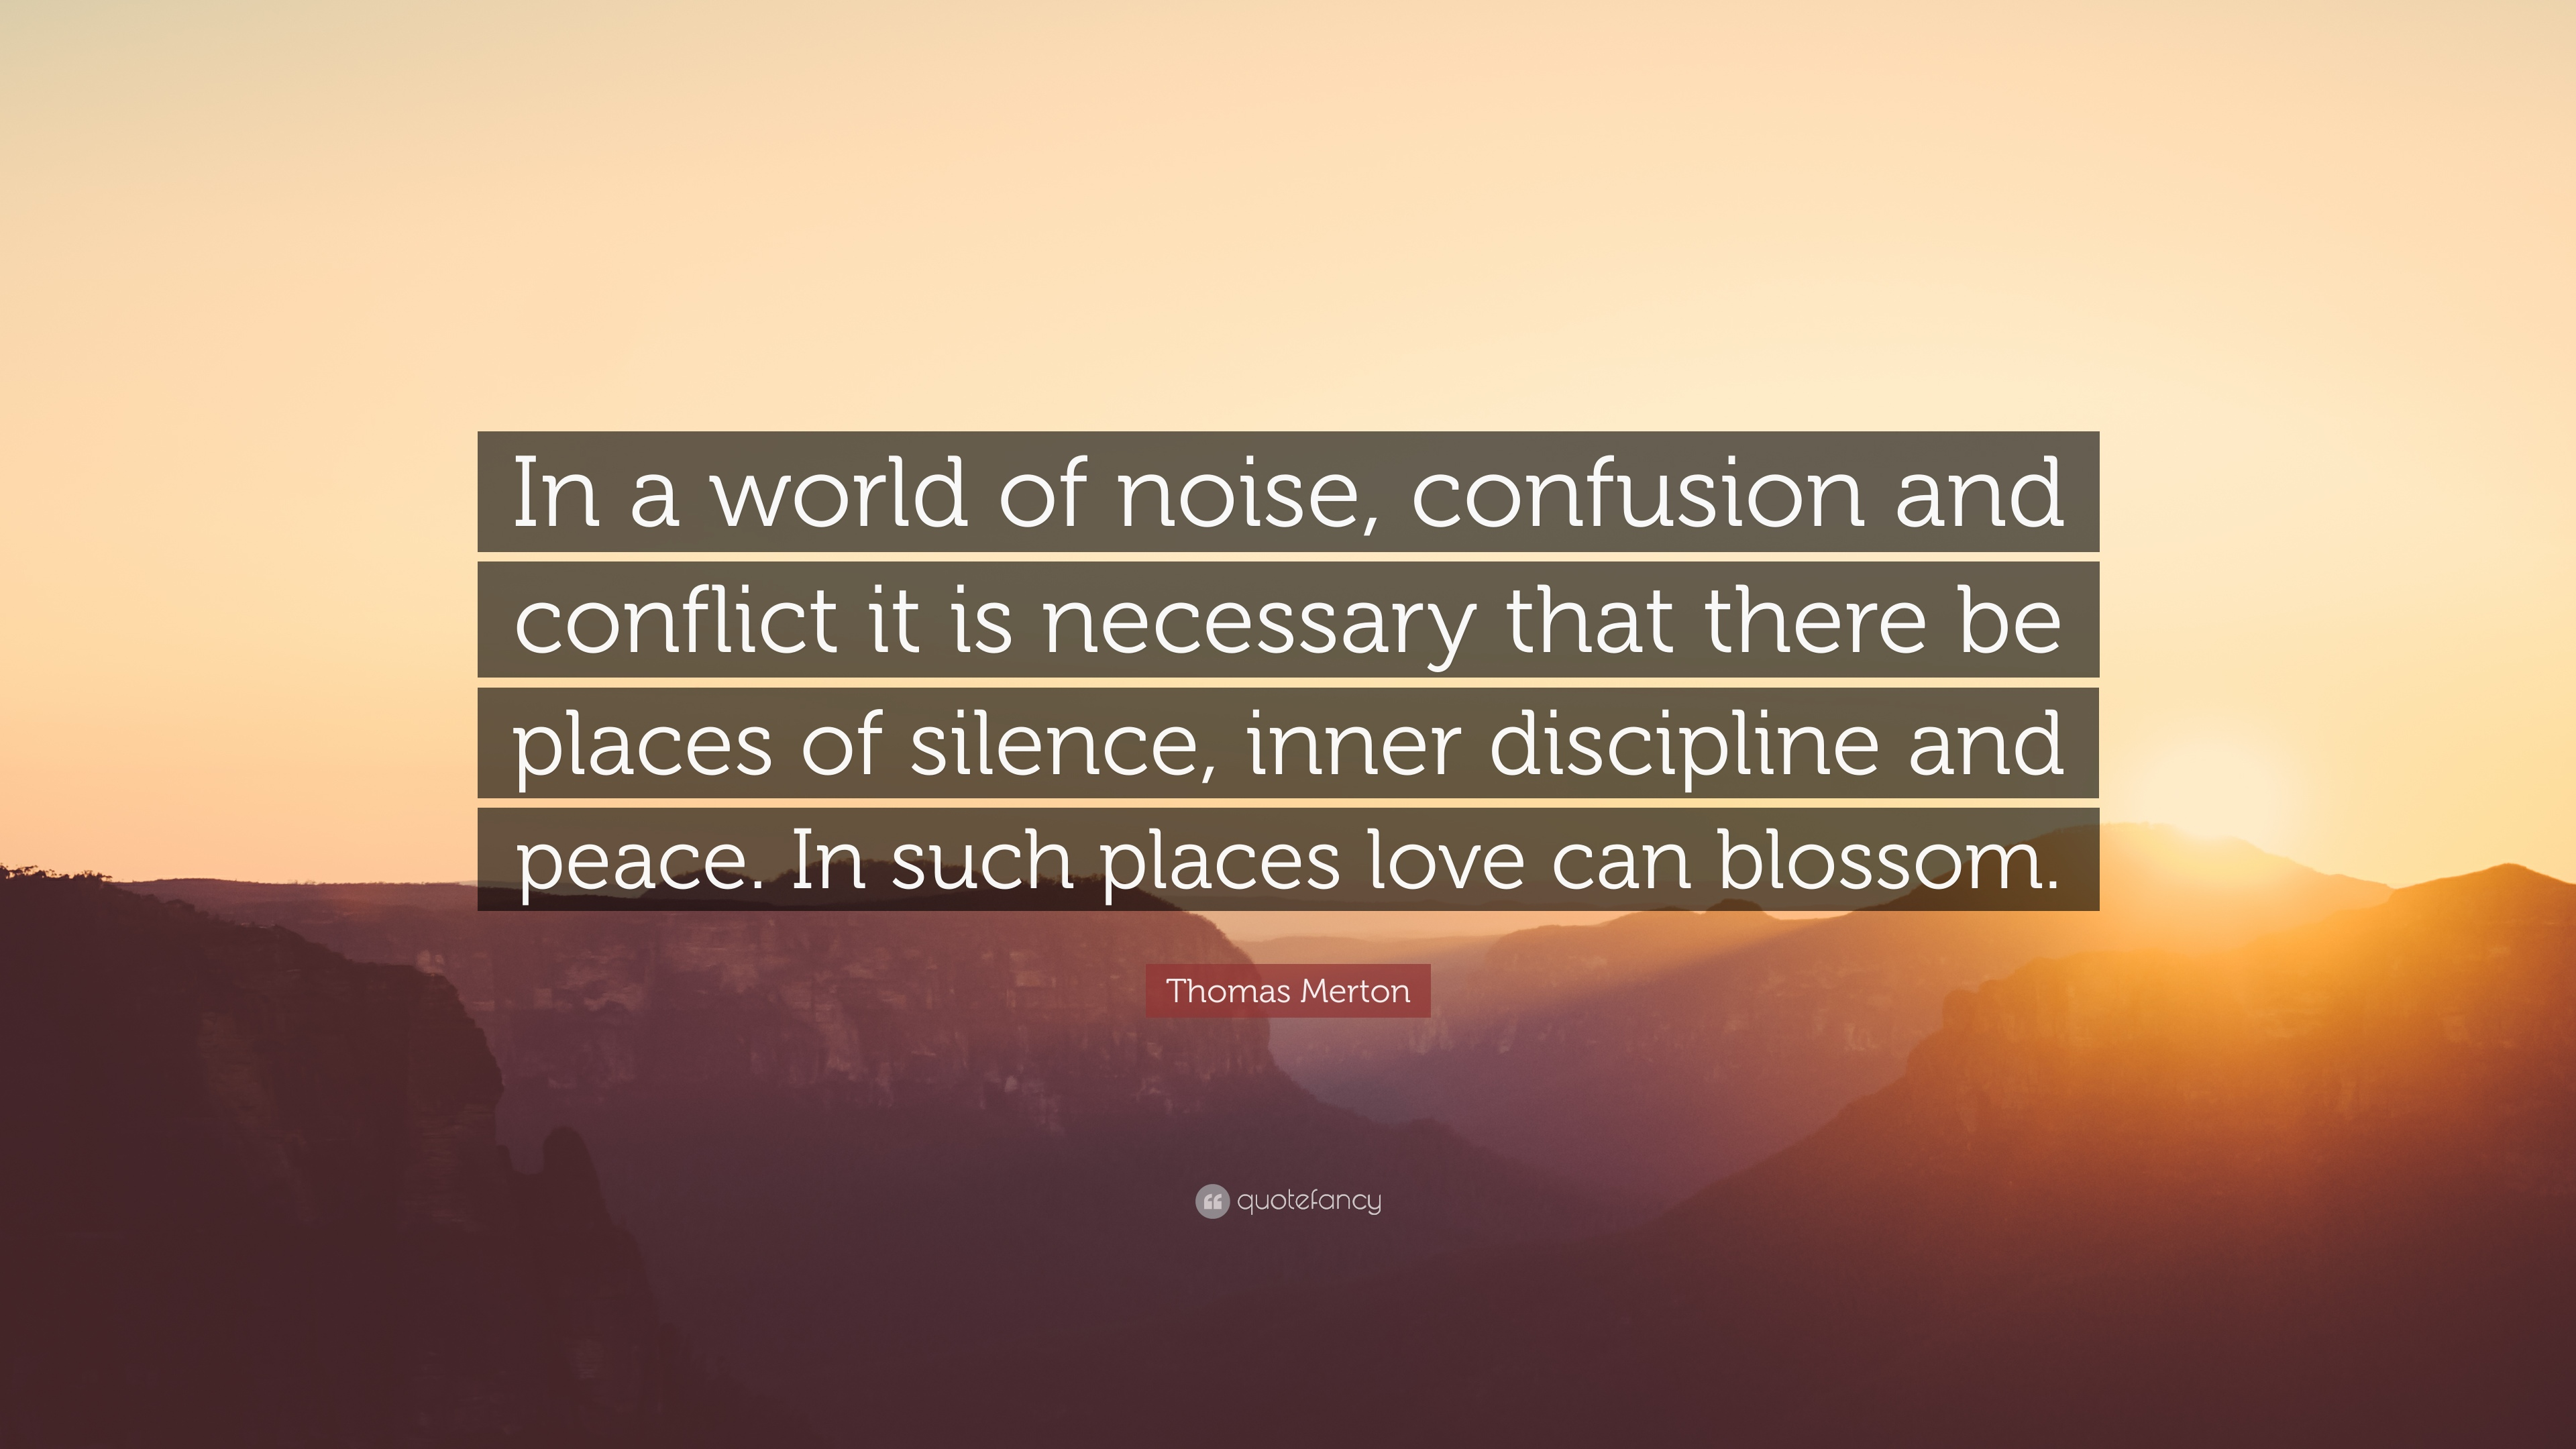 Thomas Merton Quote In A World Of Noise Confusion And Conflict It